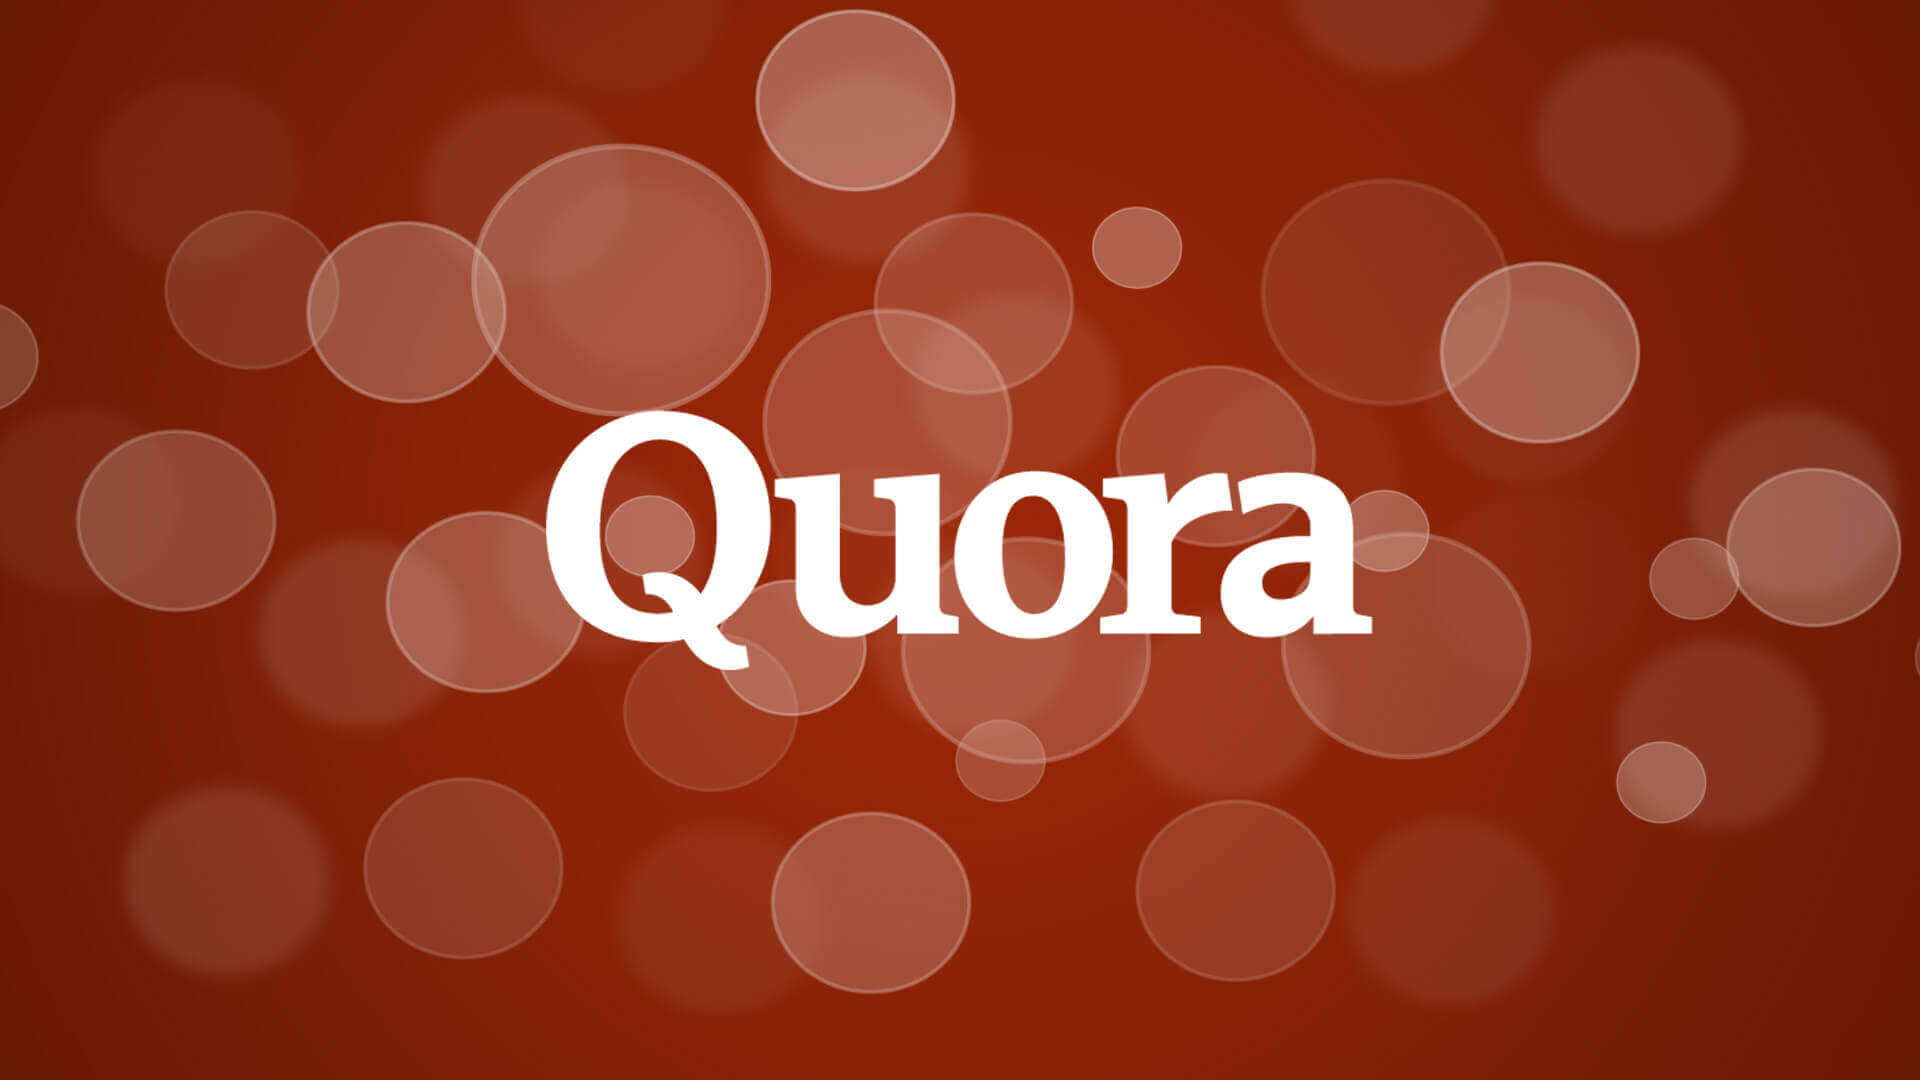 With new funding & a growing userbase, Quora makes its pitch to advertisers